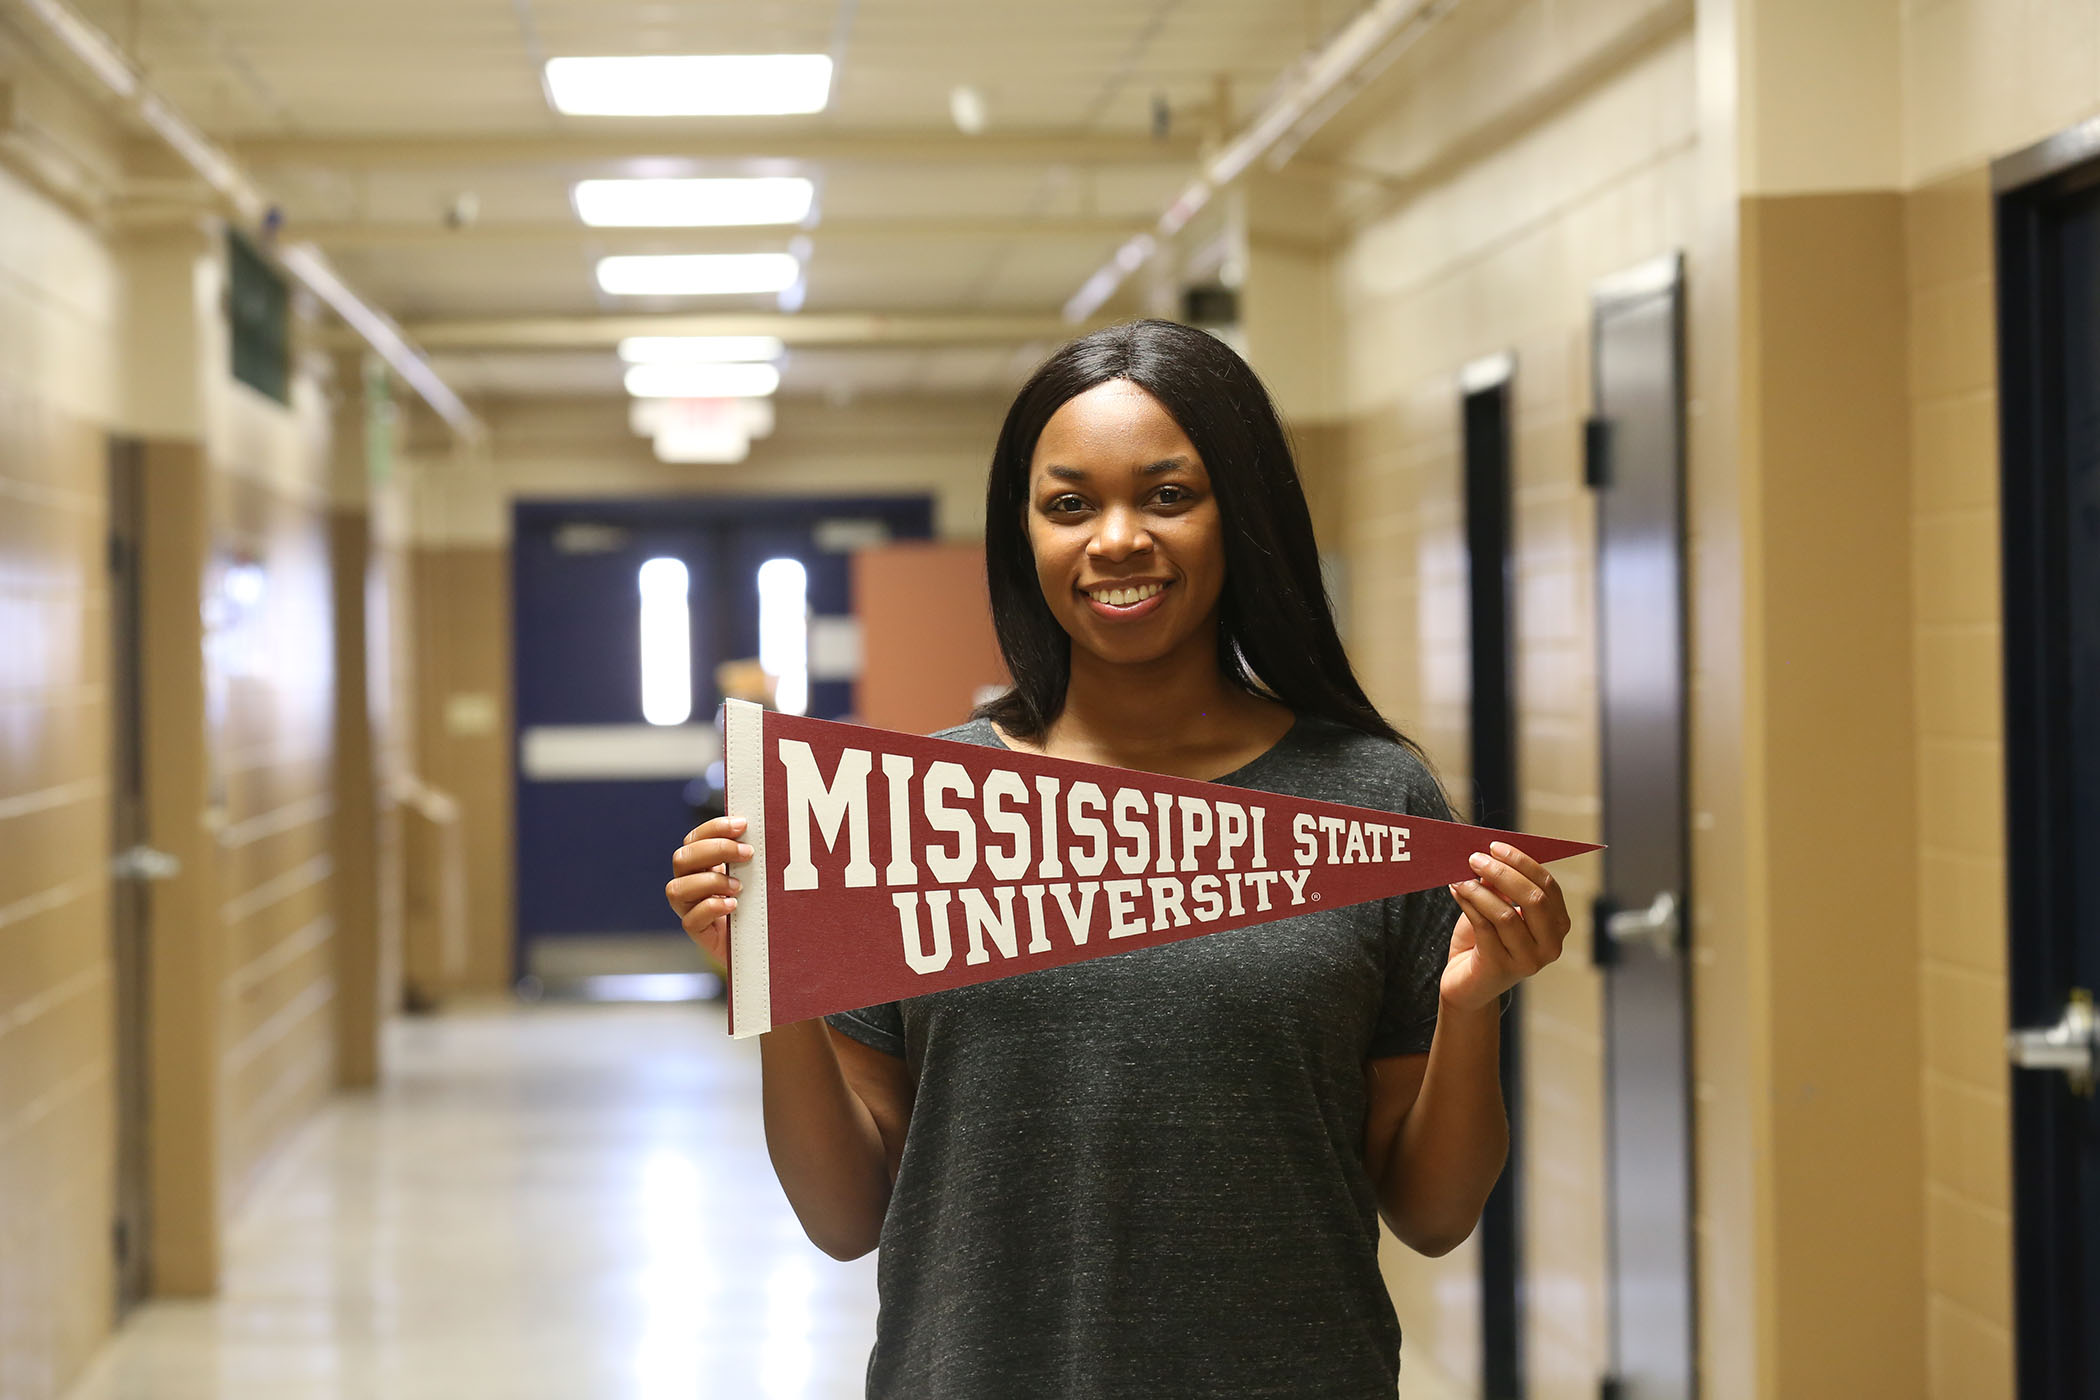 Carlondria poses with a Mississippi State University banner.